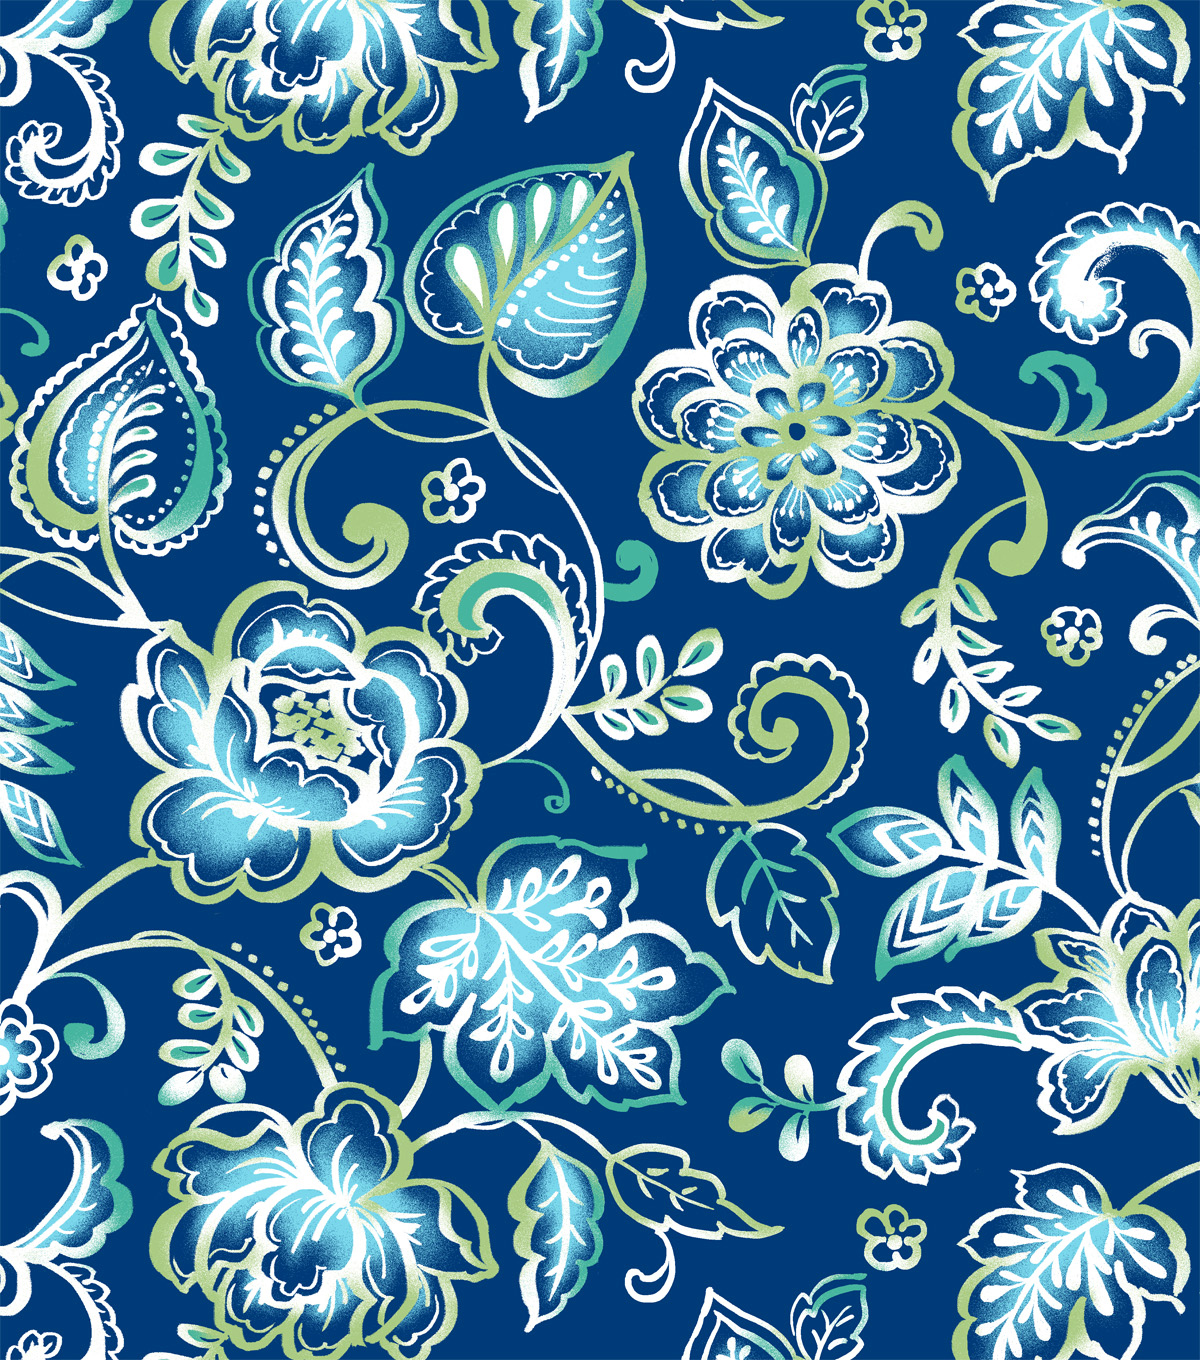 Snuggle Flannel Fabric -Blue & Green Floral